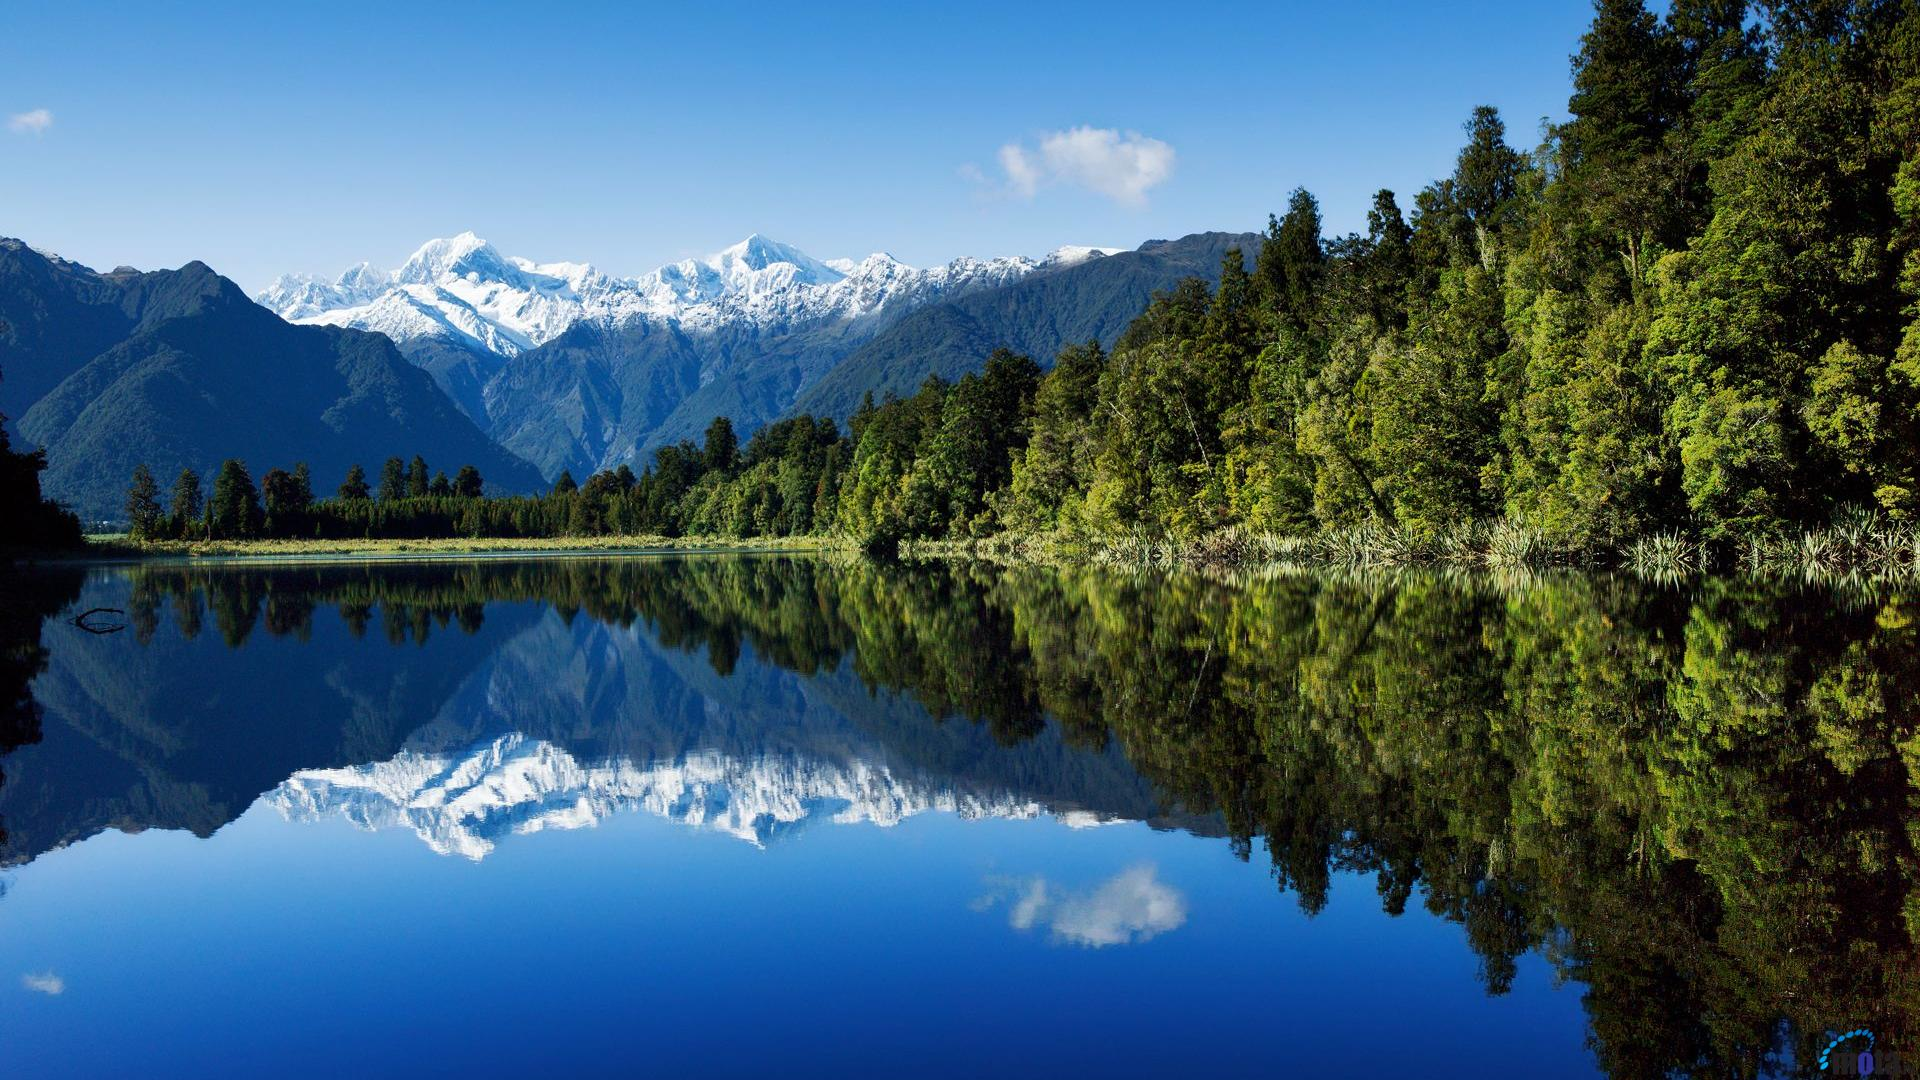 Download Wallpaper Mountains and lake in New Zealand 1920 x 1080 HDTV 1920x1080